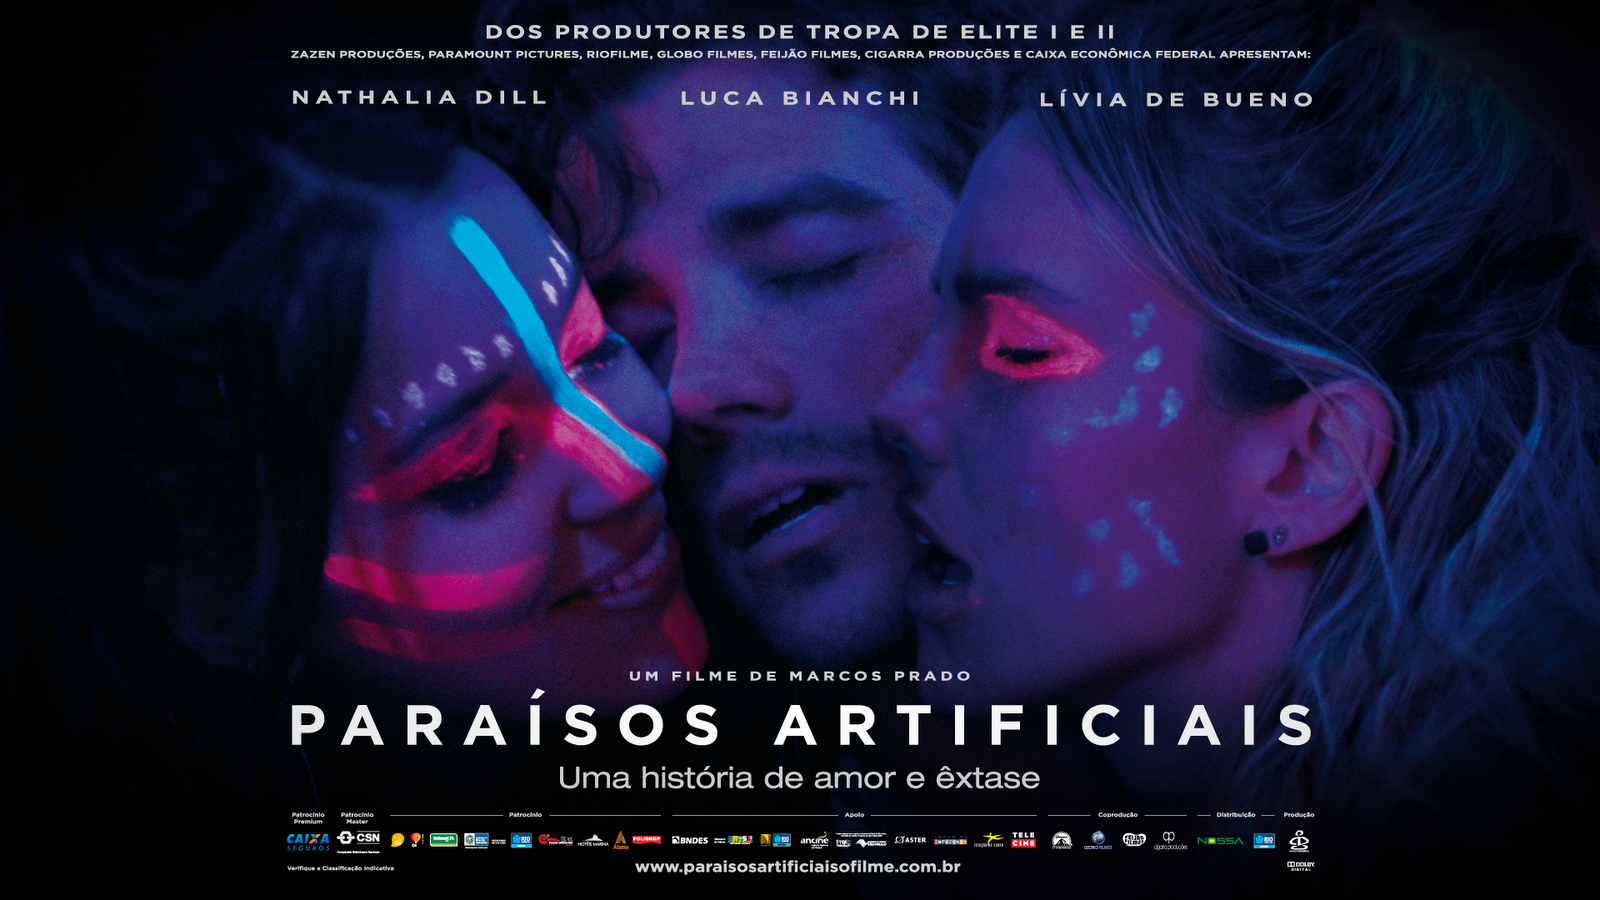 trilha sonora do filme paraisos artificiais